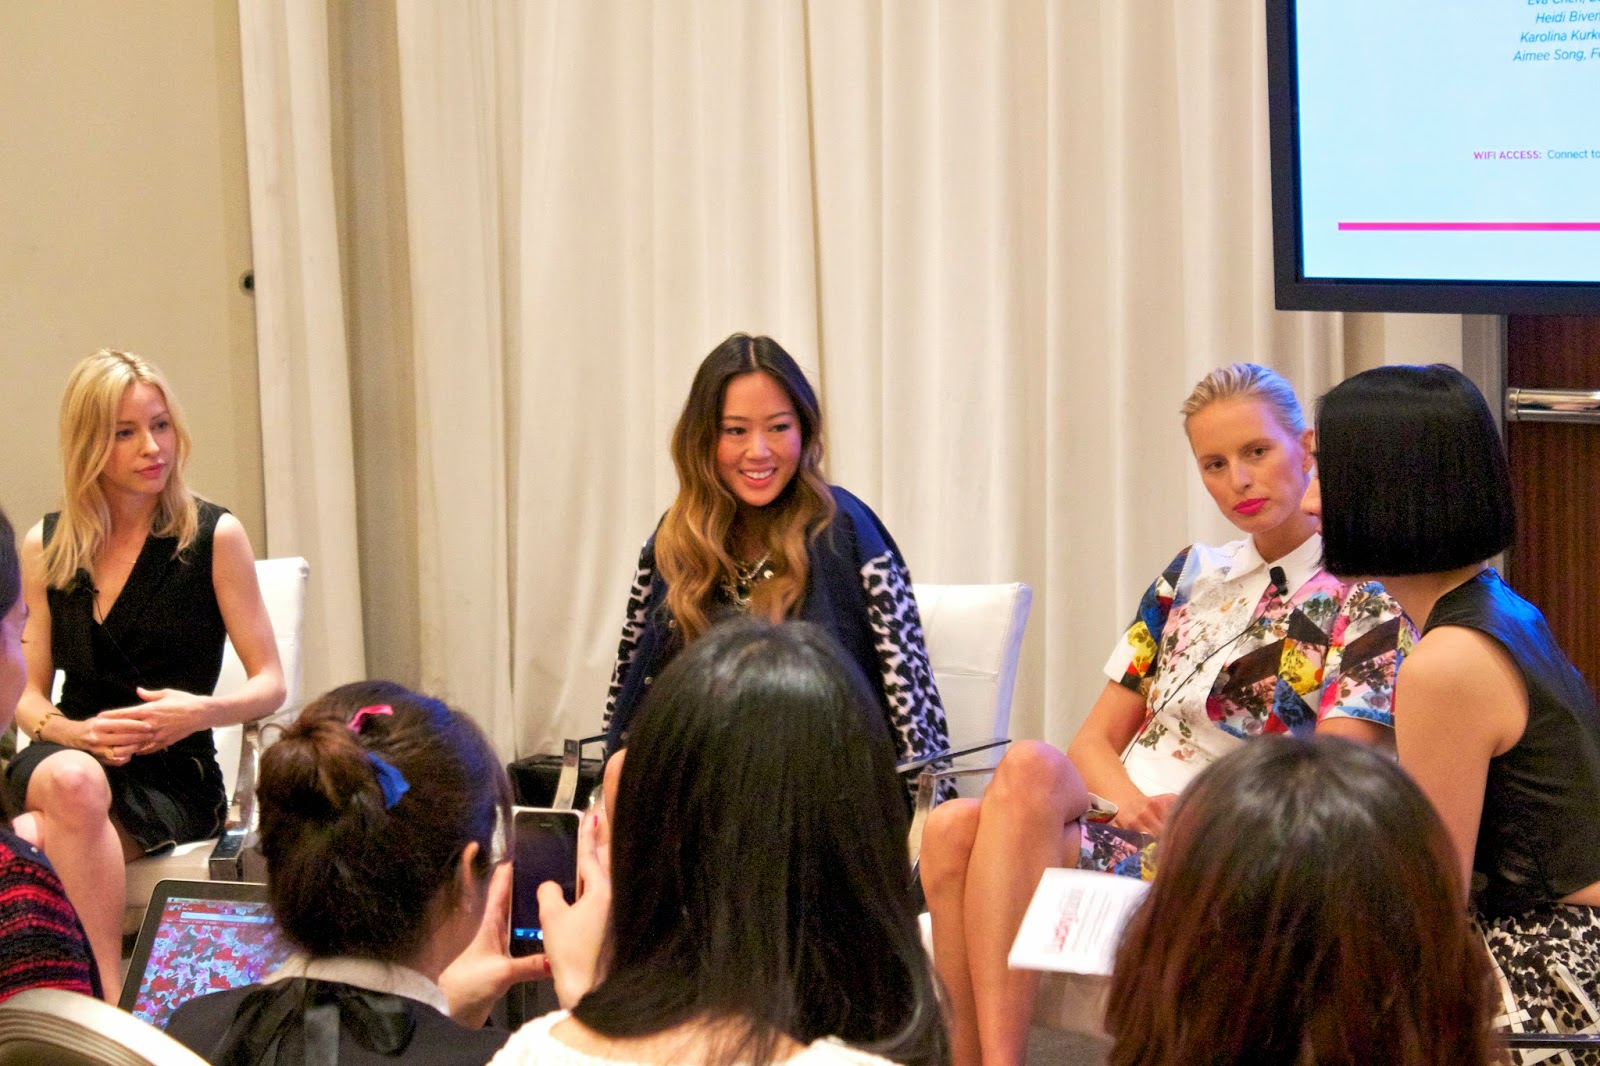 Aimee Song at LuckyFabb, Karolina Kurkova at LuckyFabb, Heidi Bivens at Luckyfabb